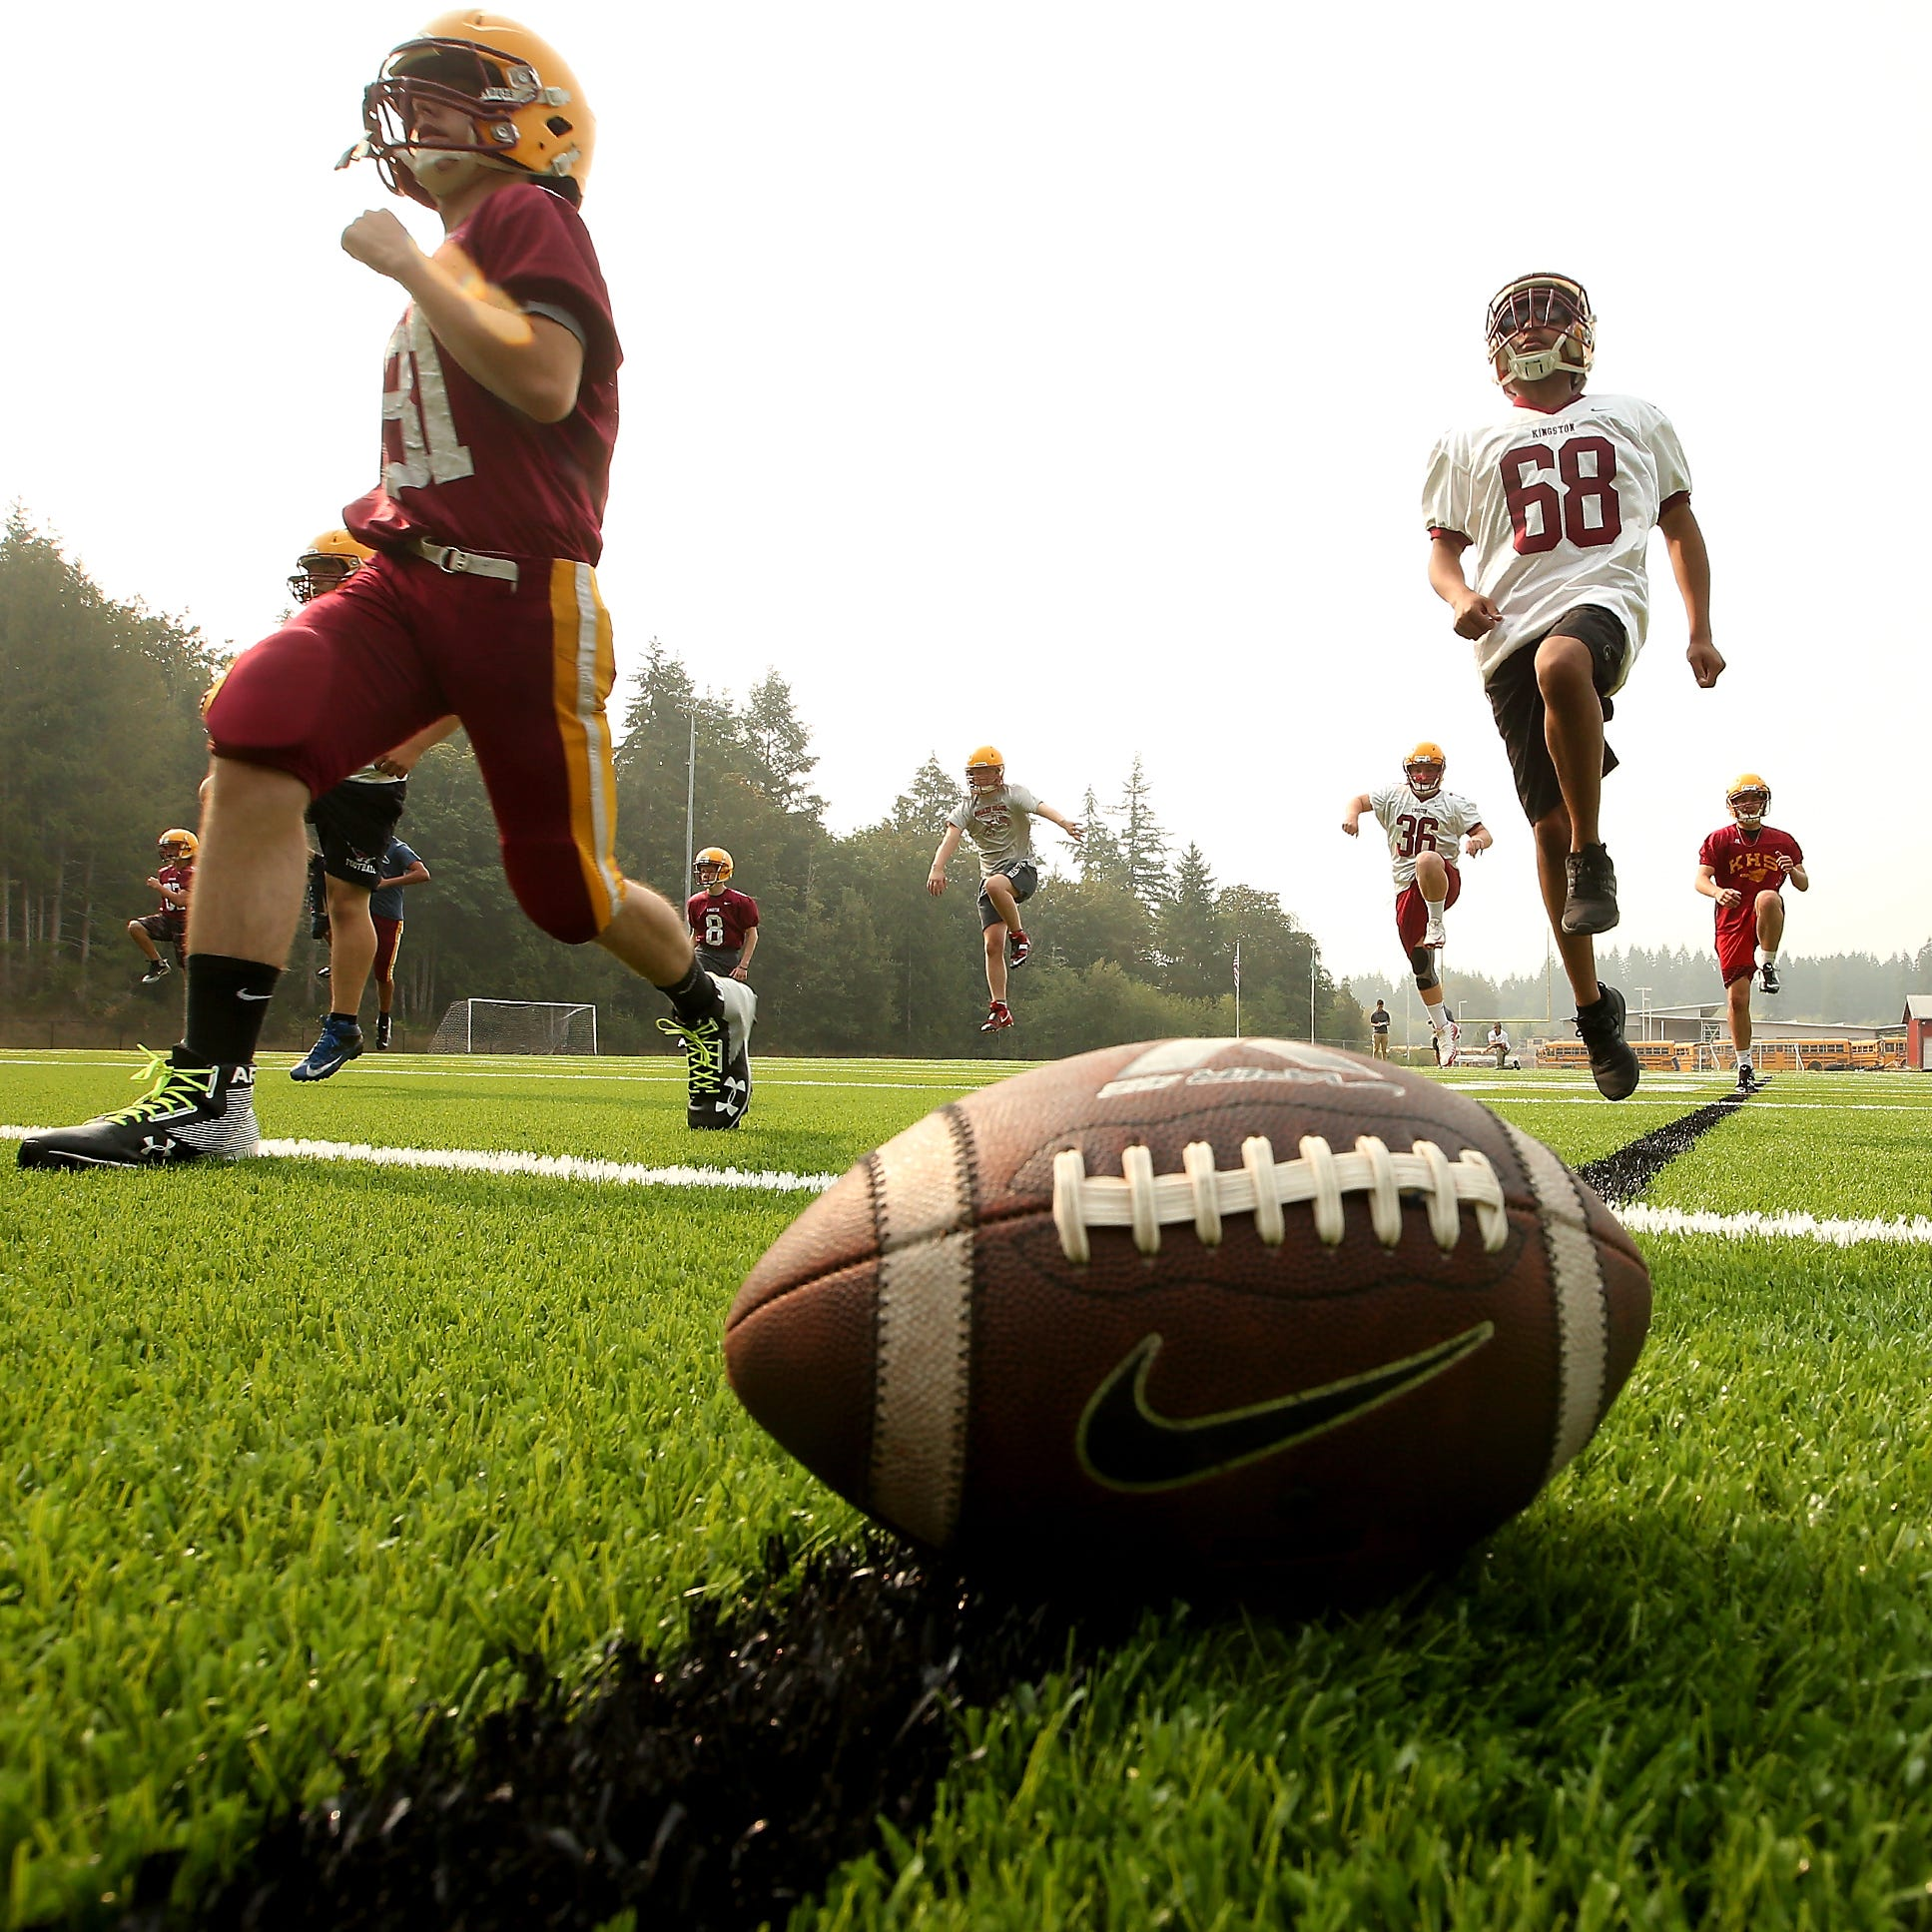 Smoky skies in Kitsap lead to change of plans for first day of football practice